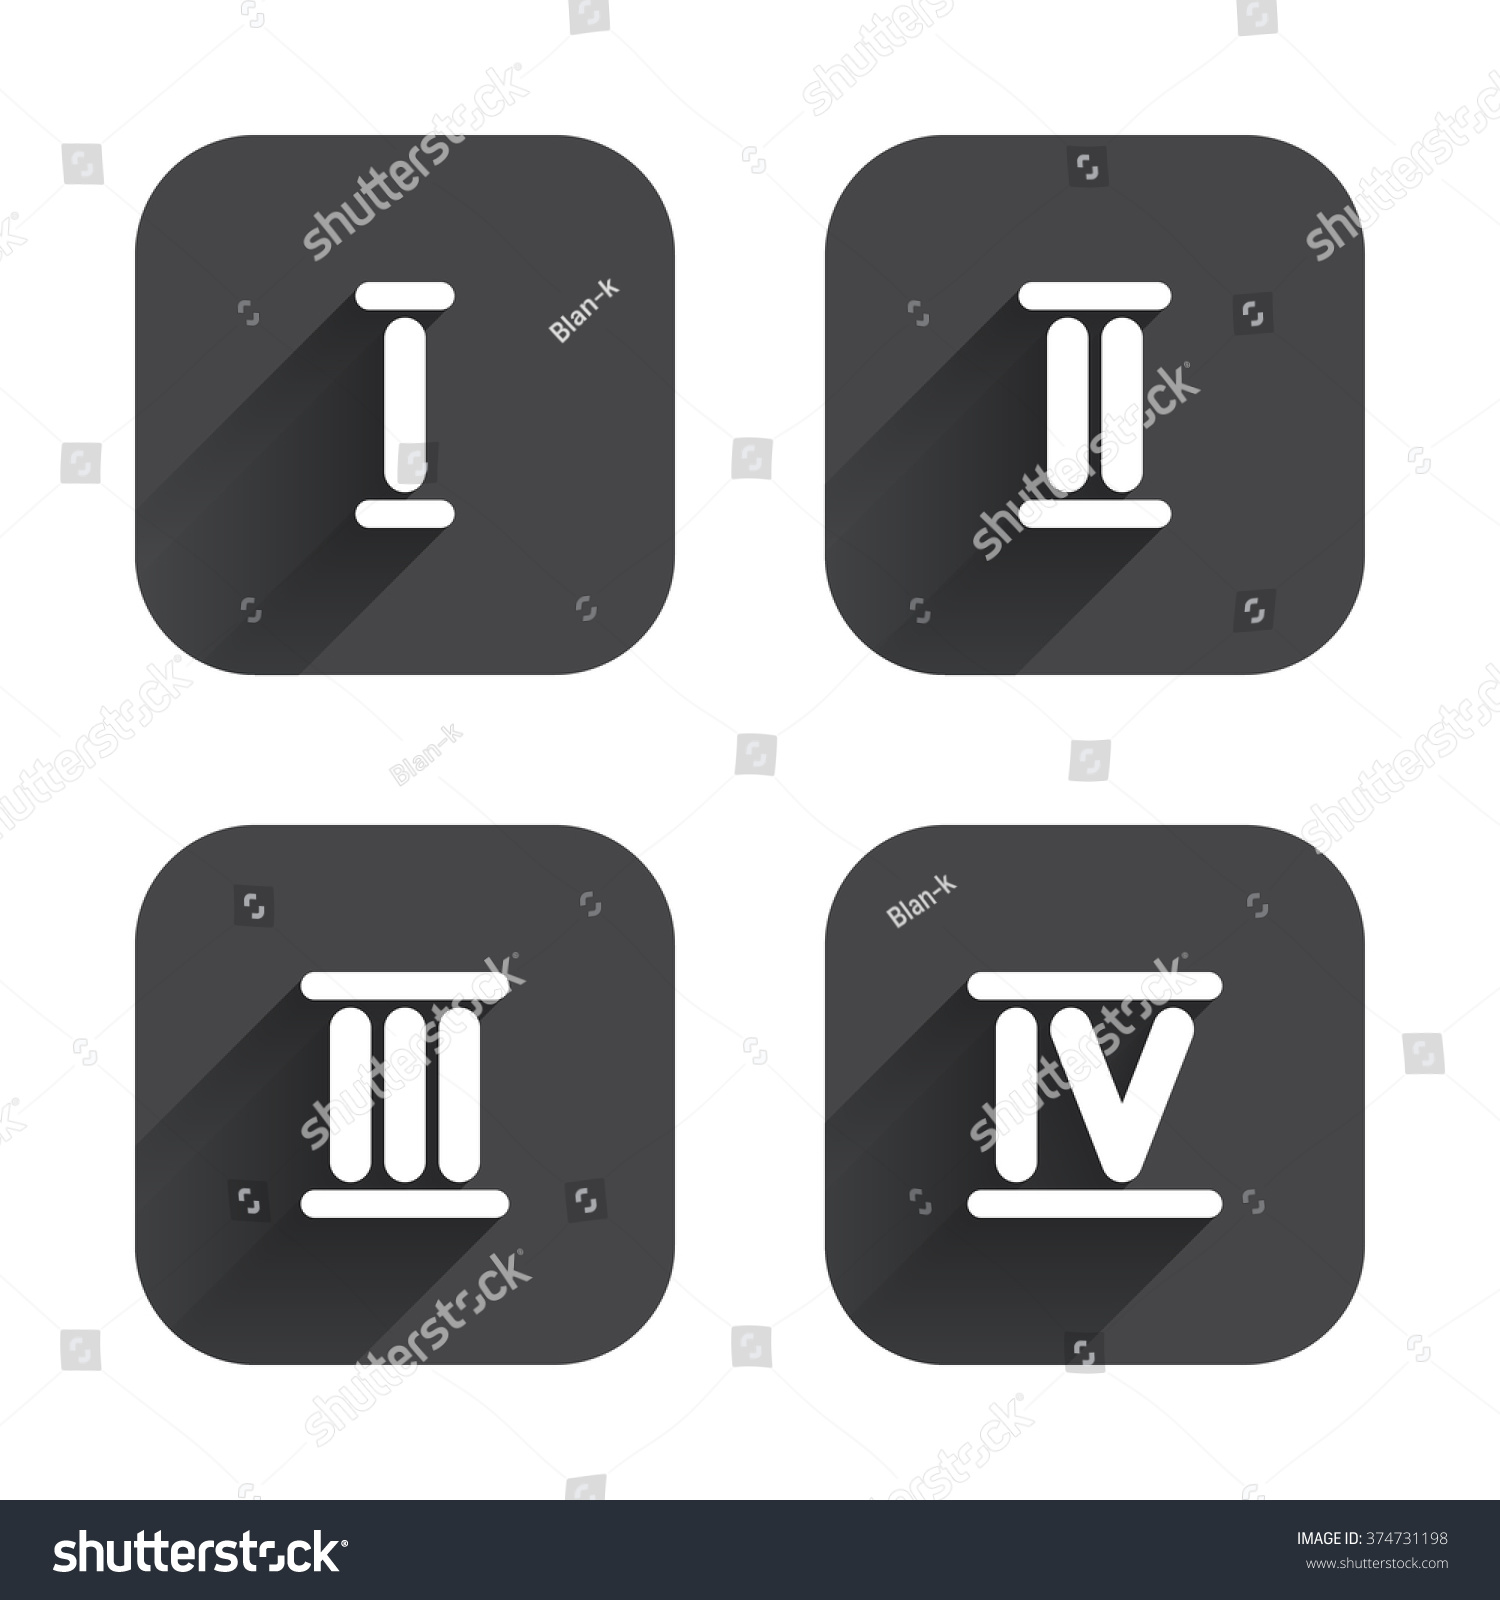 Worksheet 4 Roman Numeral roman numeral icons 1 2 3 stock vector 374731198 shutterstock and 4 digit characters ancient rome